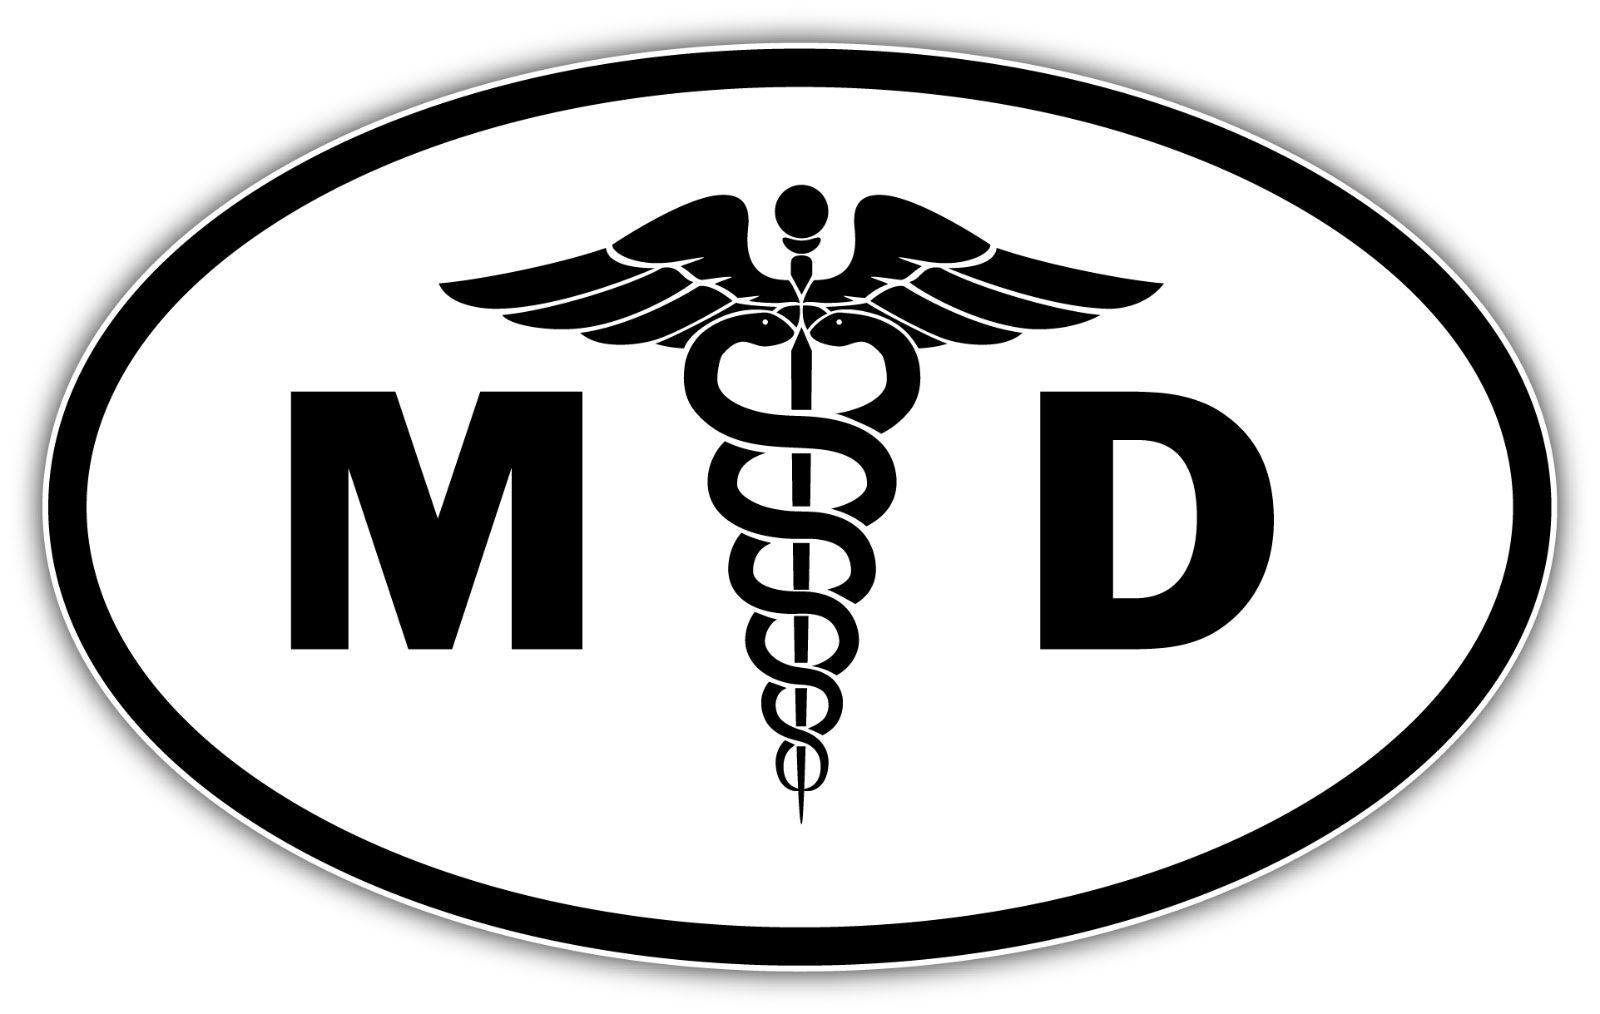 1600x1014 Md Medical Doctor Oval Symbol Sign Car Bumper Window Sticker Decal